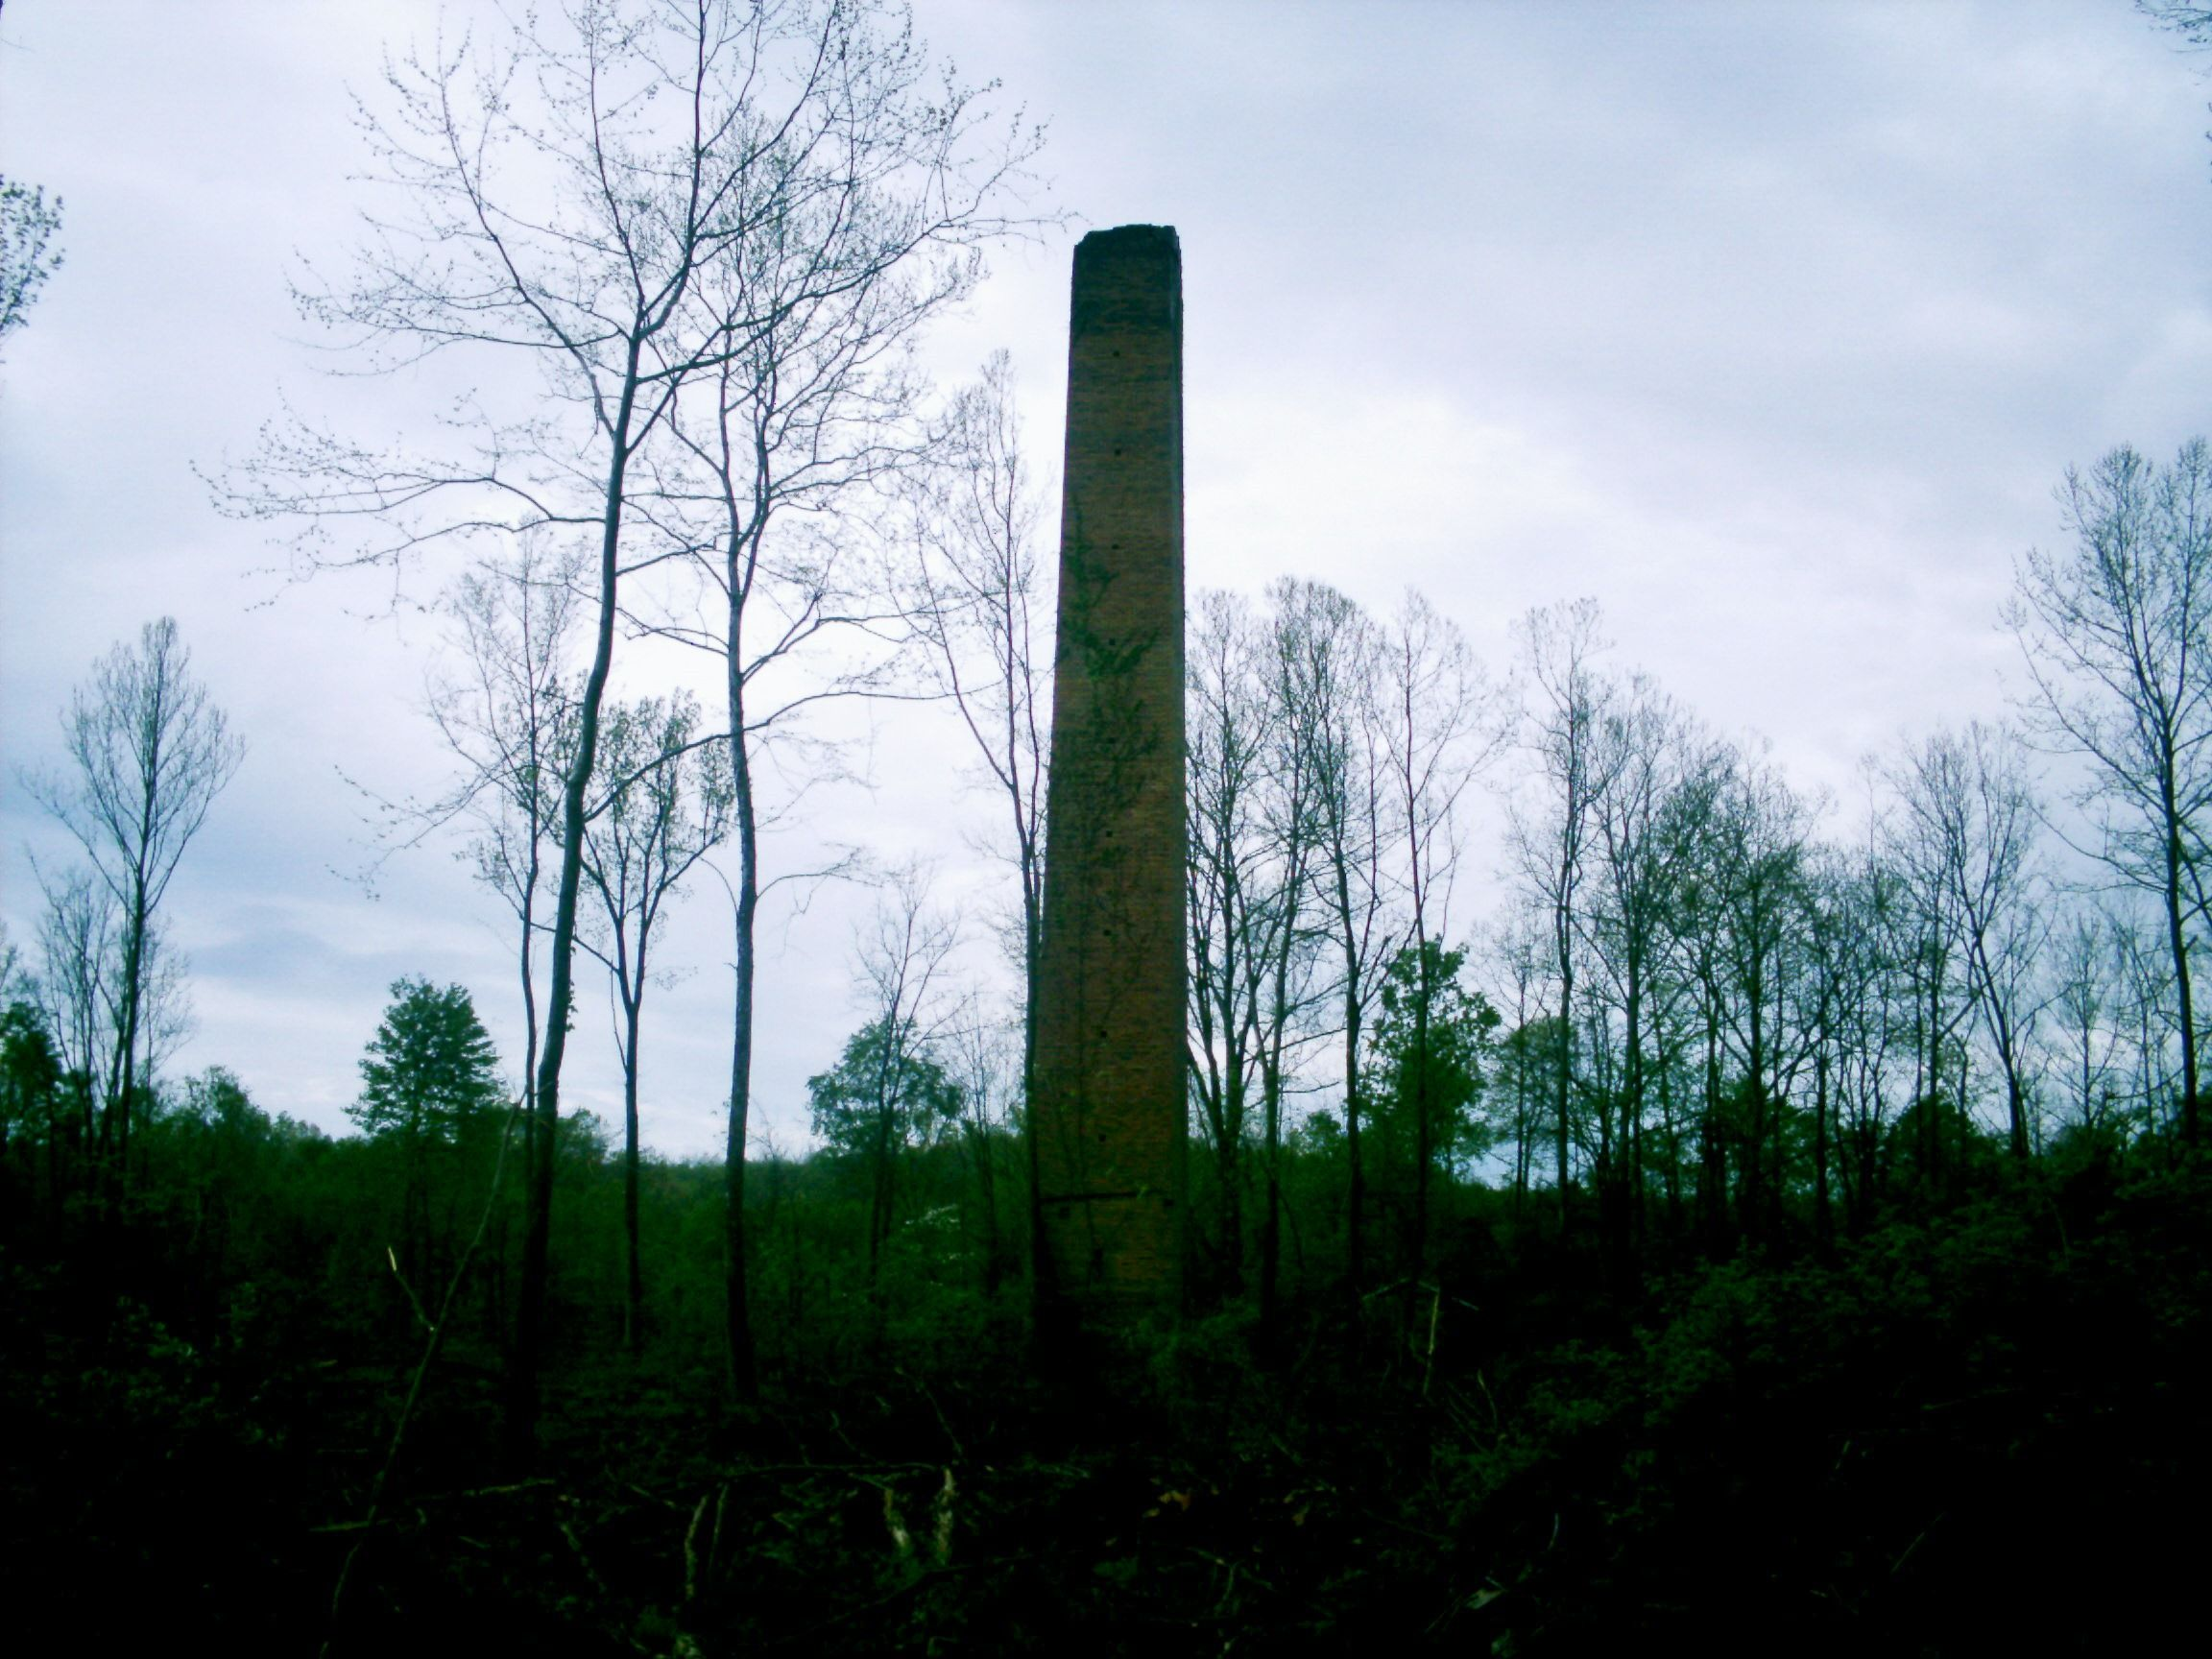 Puritan, OH (Vinton County) - Another smoke stack in the brick yard complex. This was the tallest one.